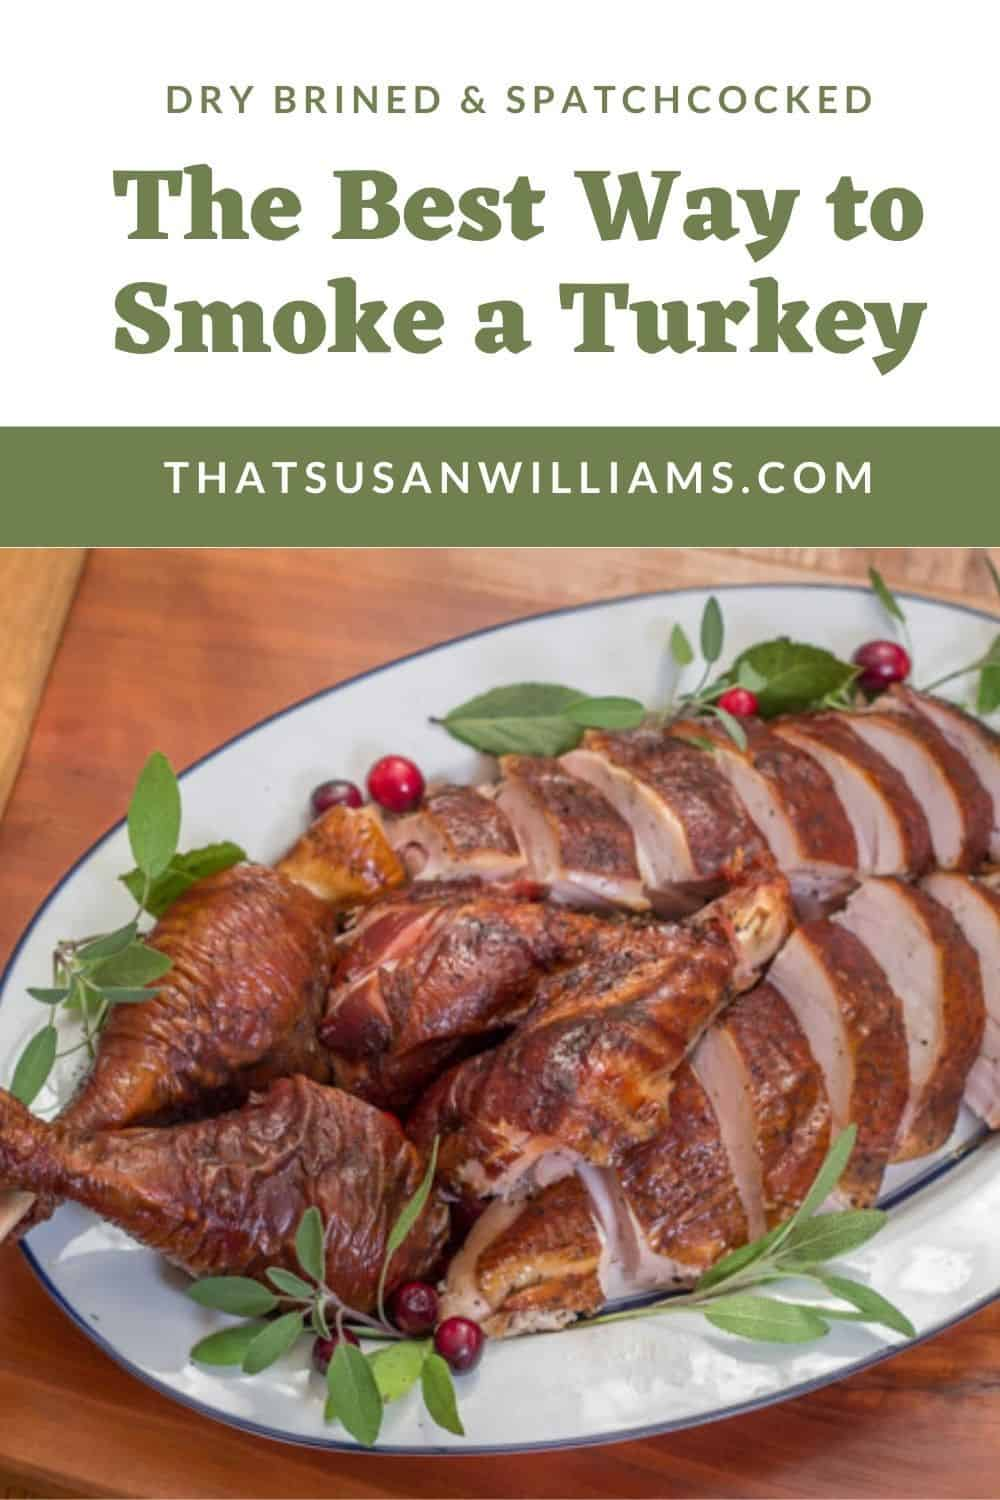 The Best Way to Smoke a Turkey: a platter full of proof.